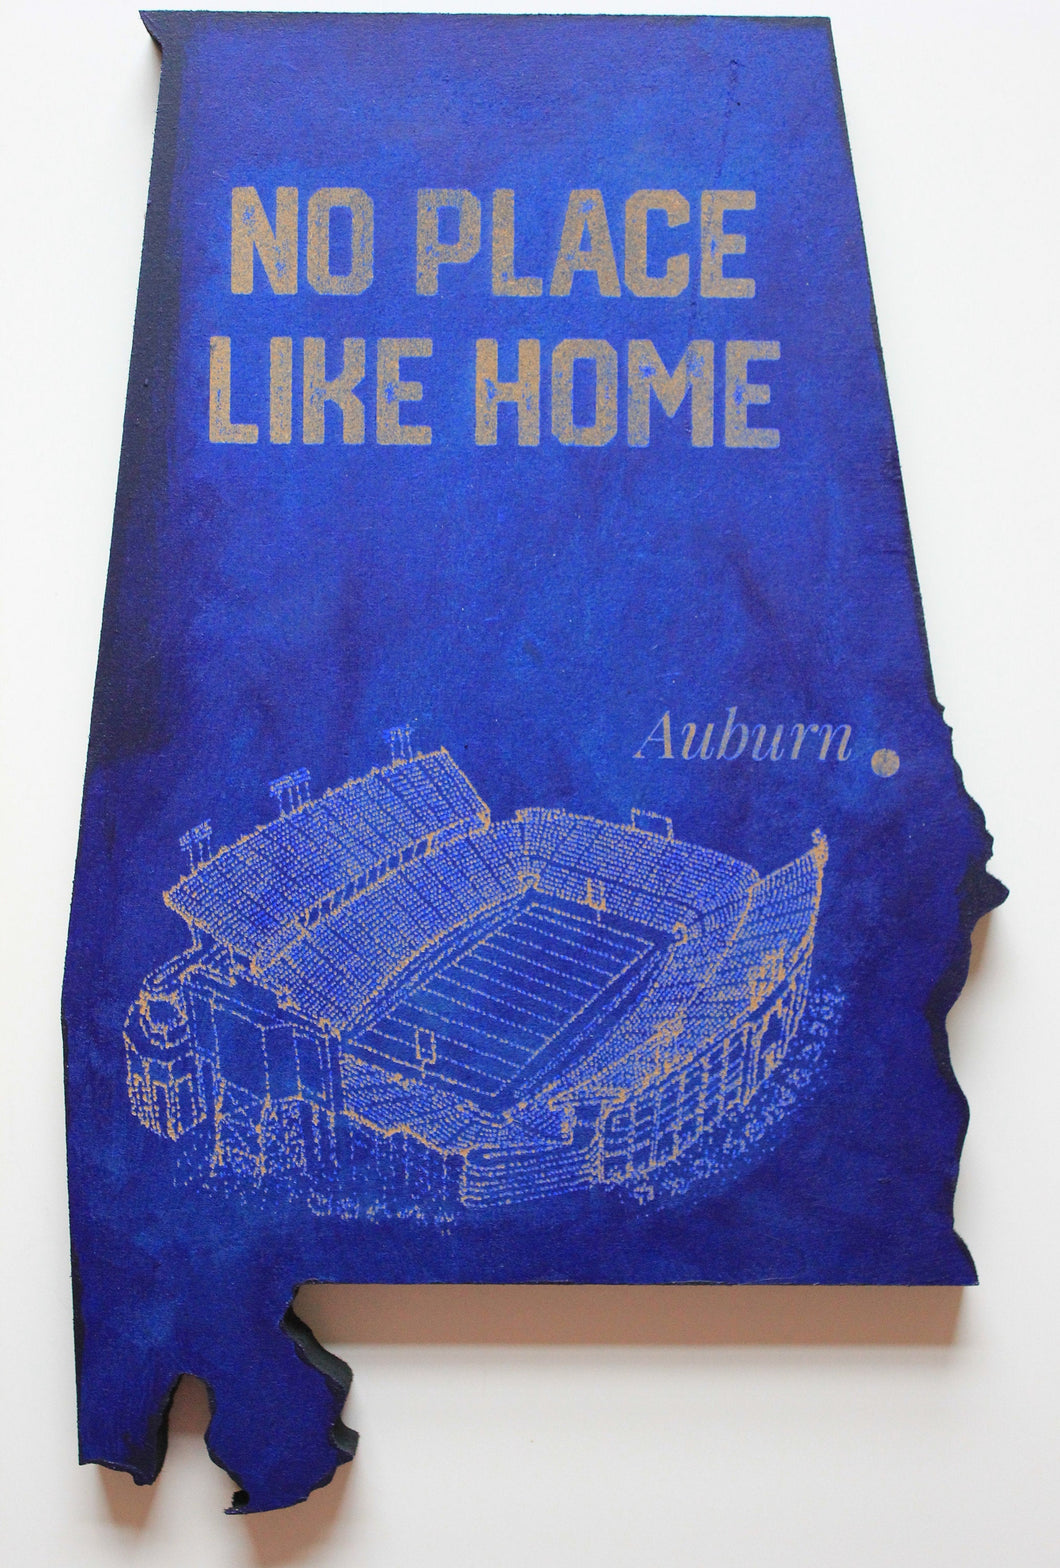 State of Alabama Wooden Cut Out Featuring Jordan-Hare Stadium, home of the Auburn Tigers